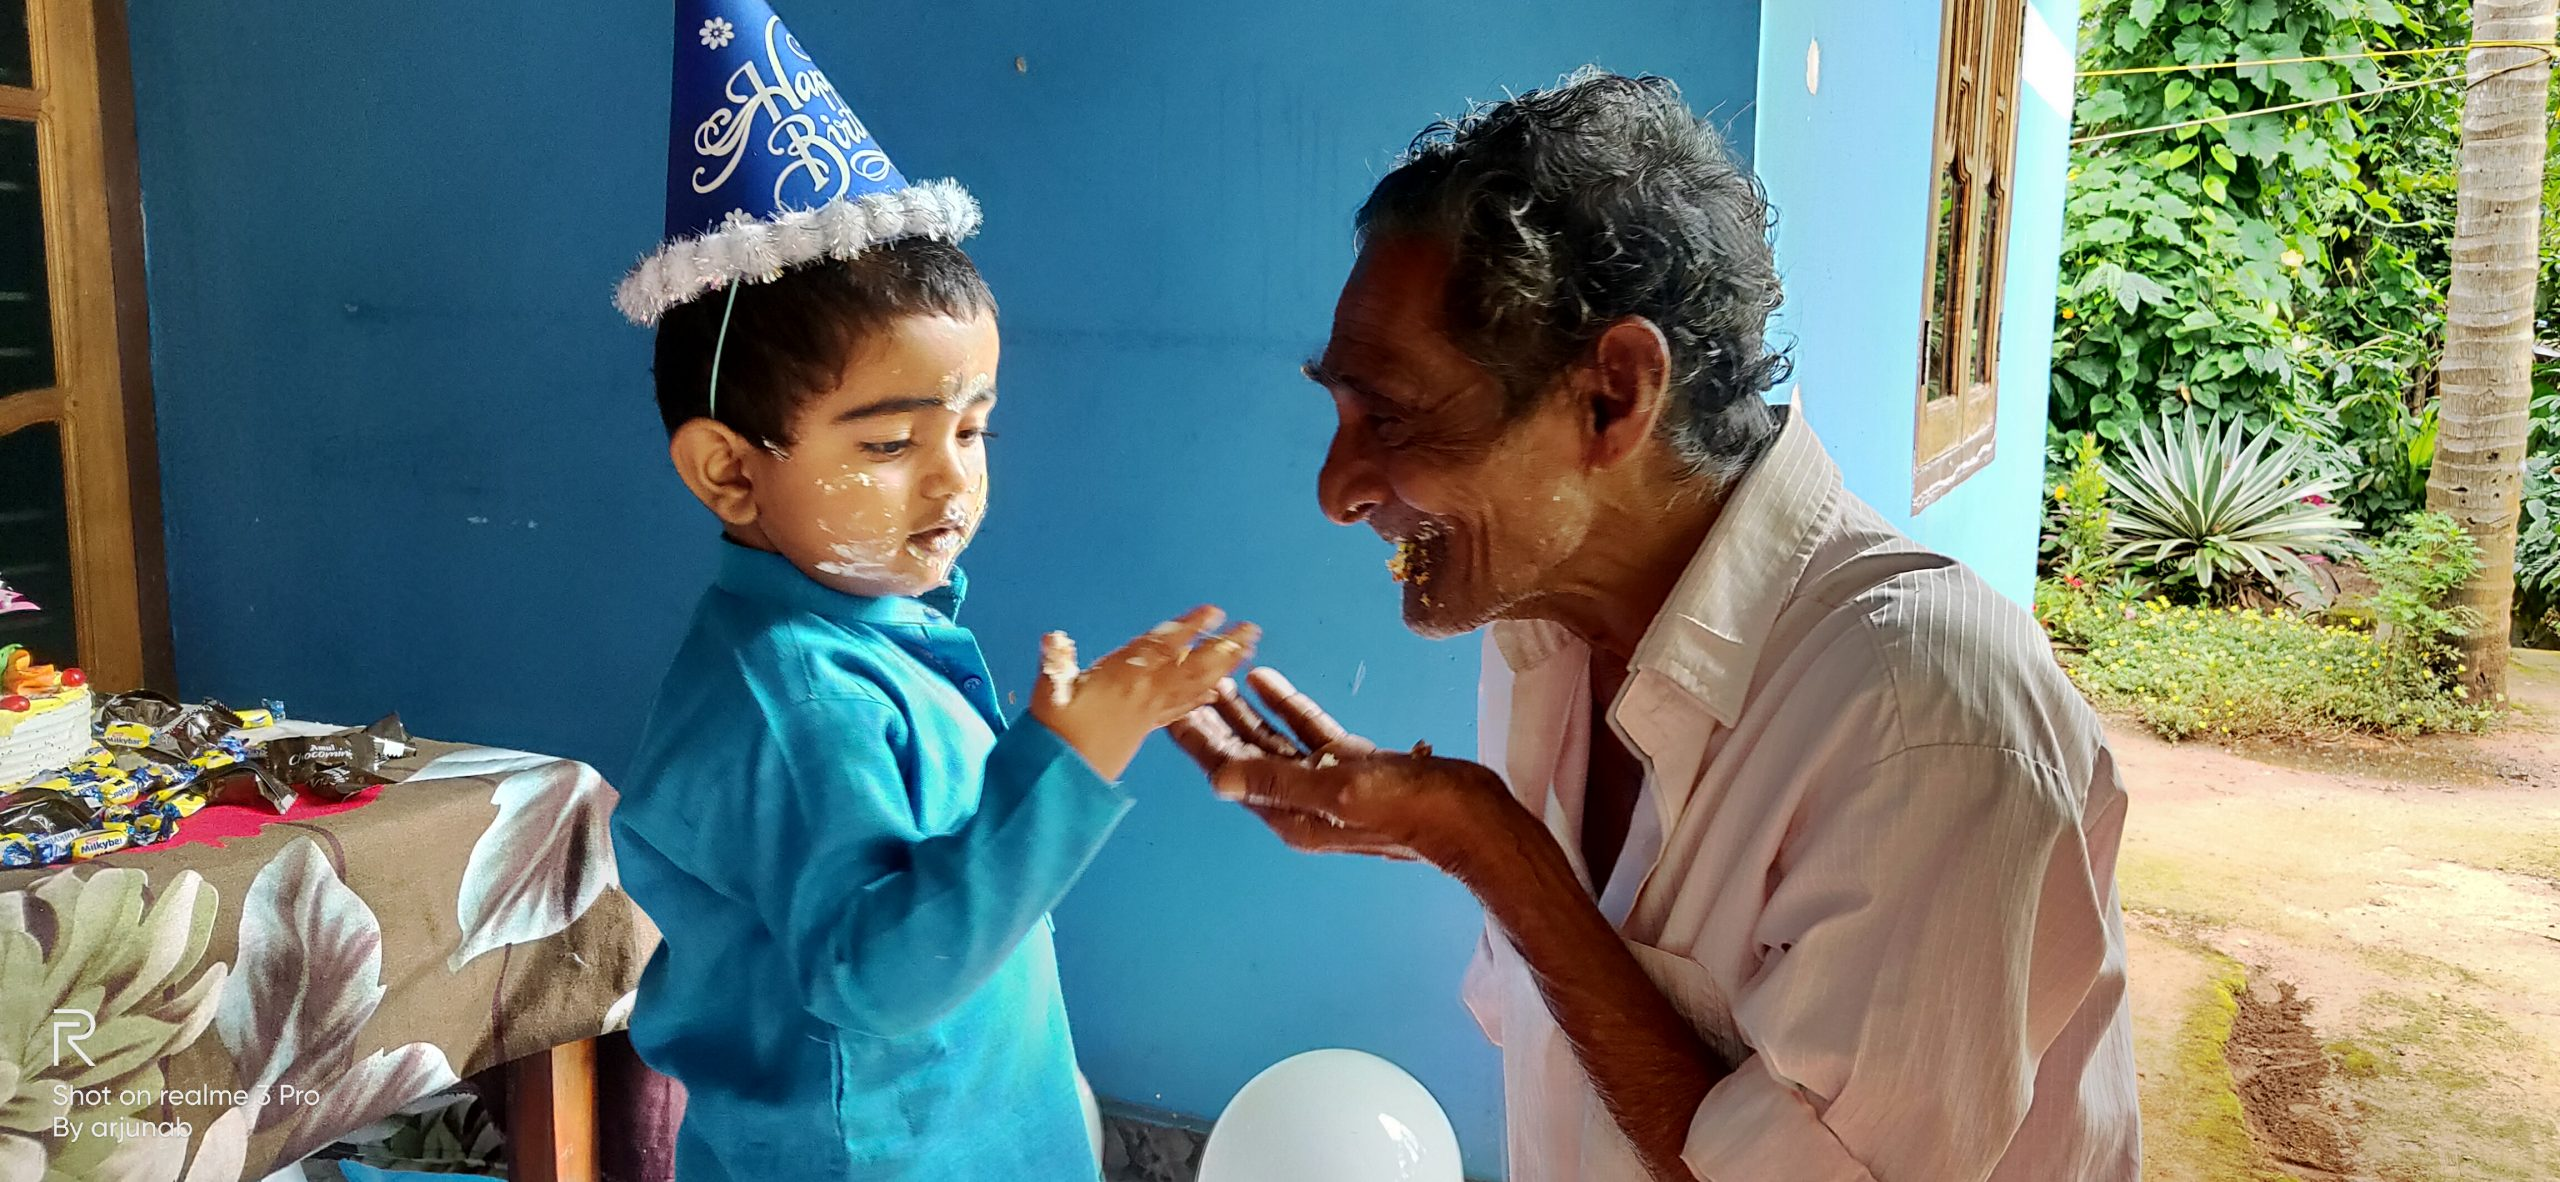 A birthday boy with his grandfather